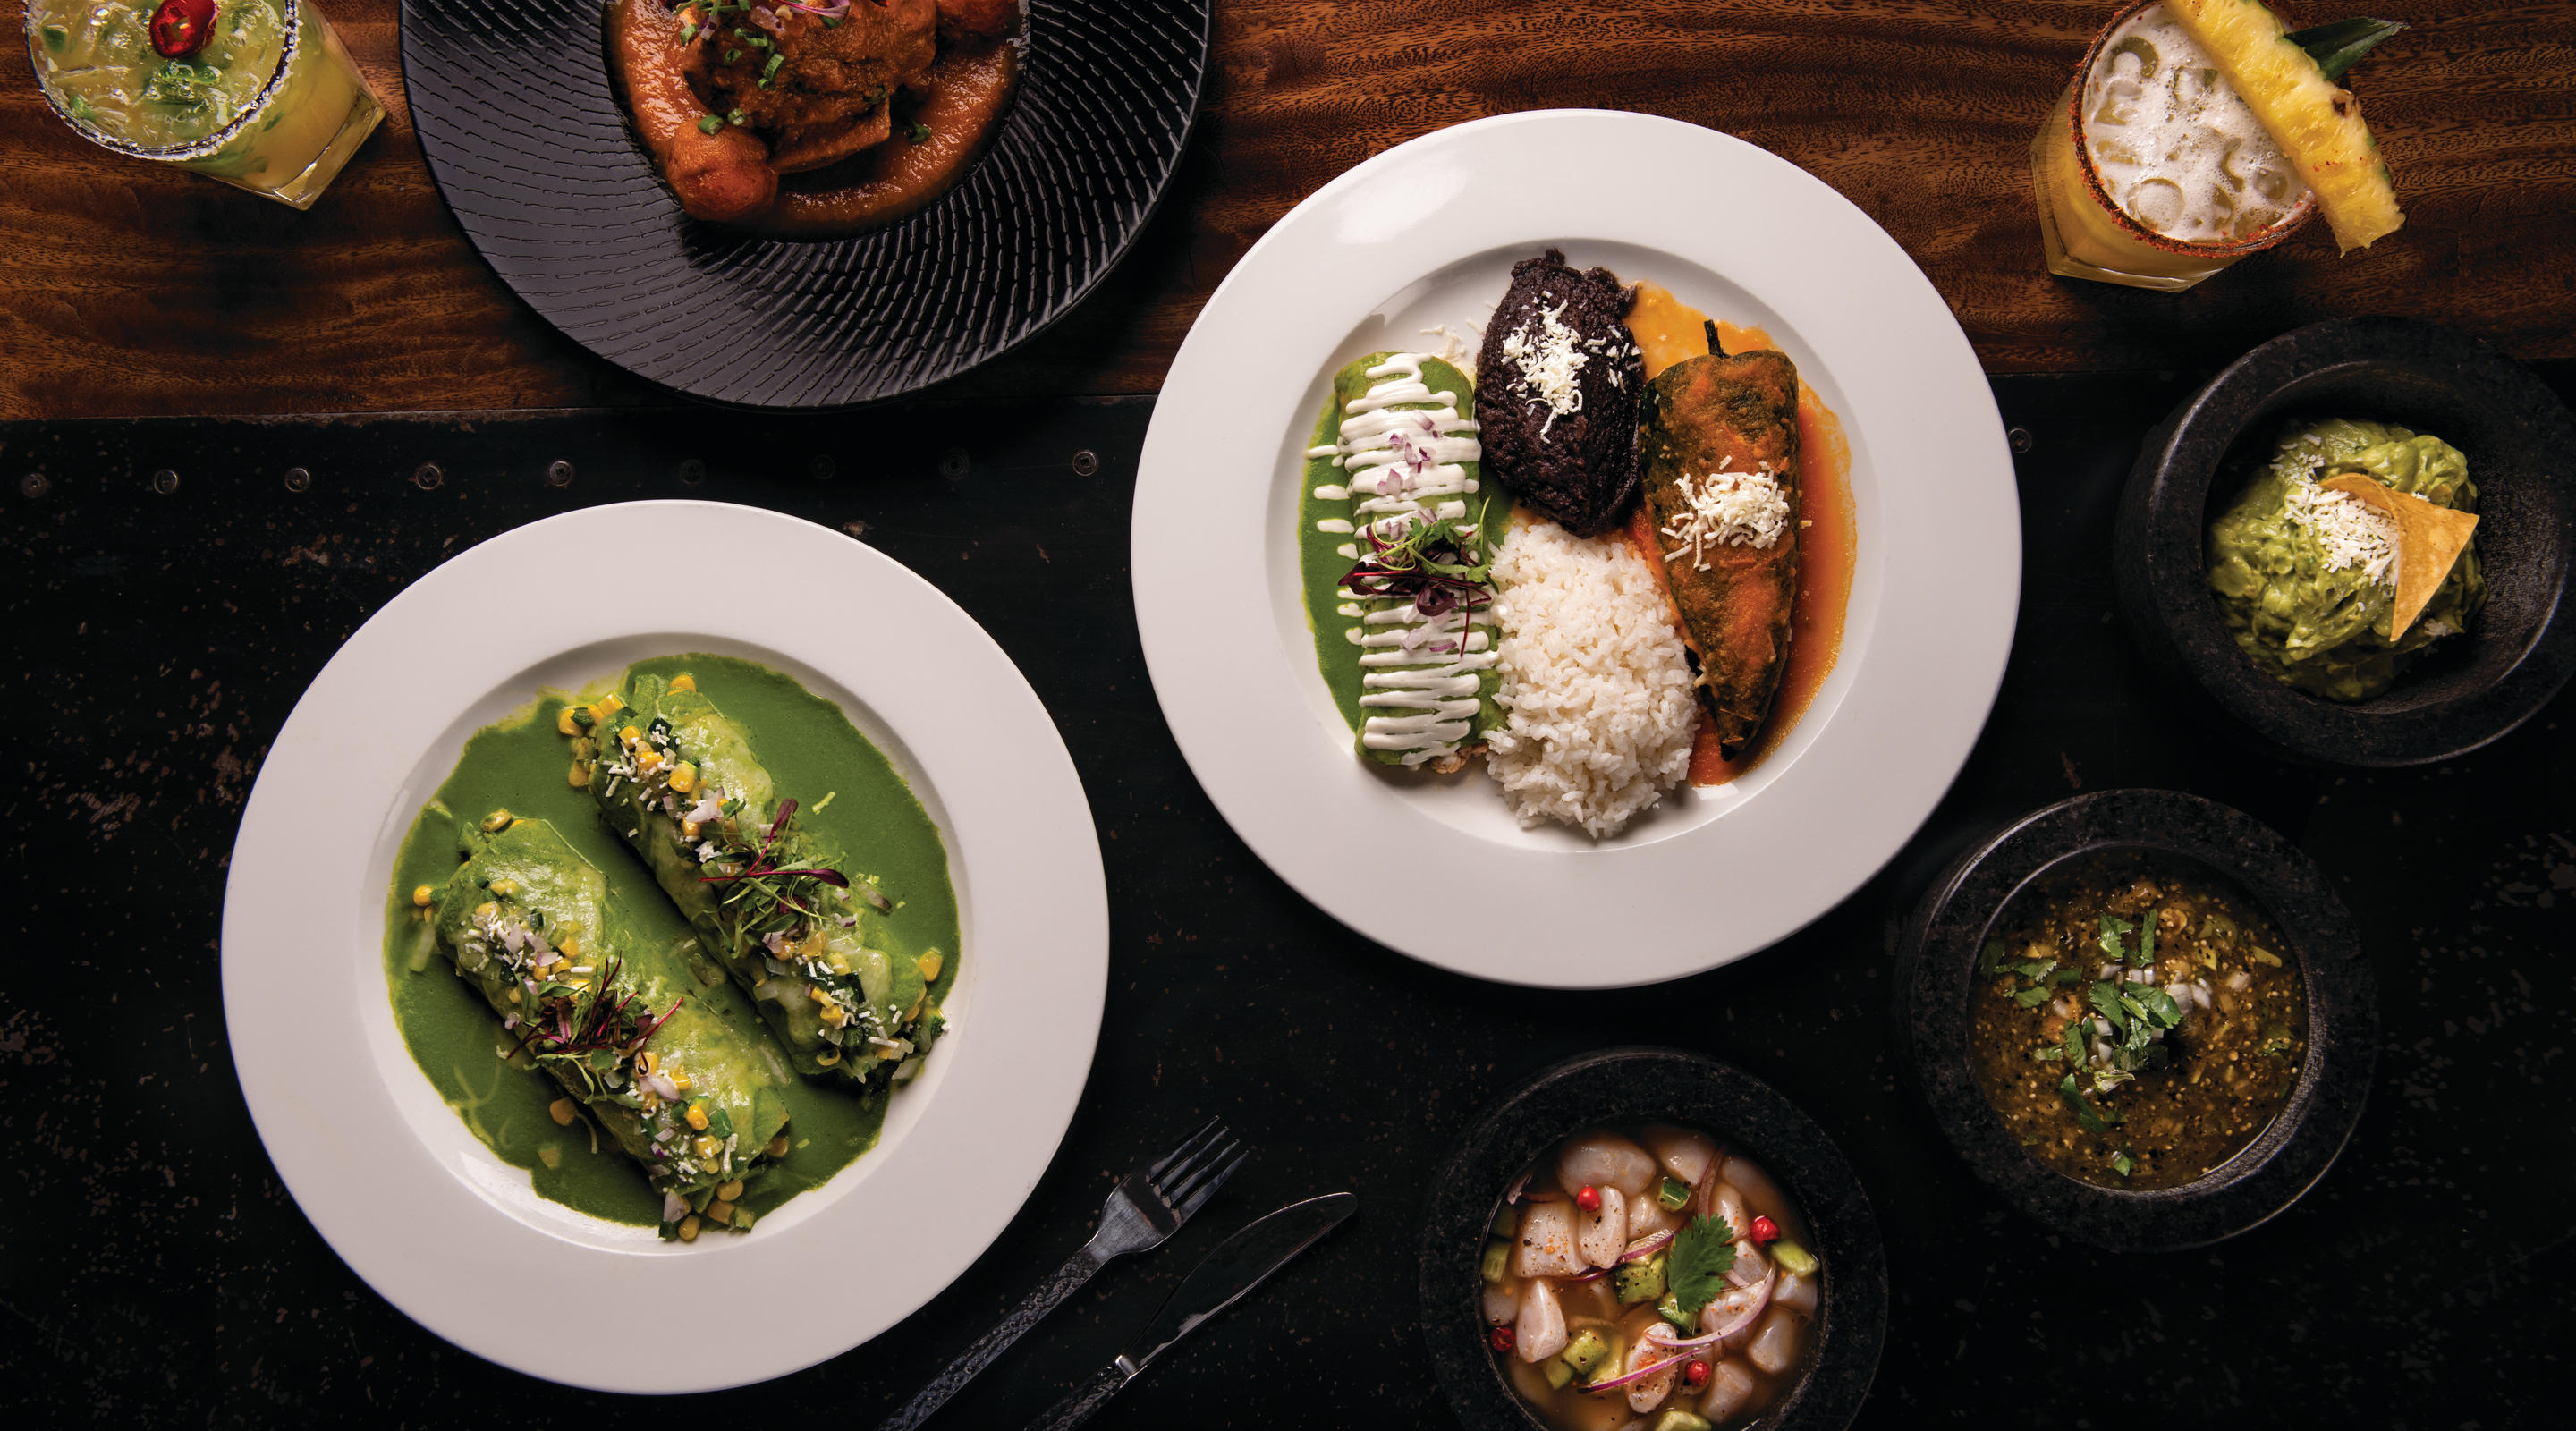 Enjoy Baja specials including selections of seafood, beef, pork, chicken and vegetarian dishes.